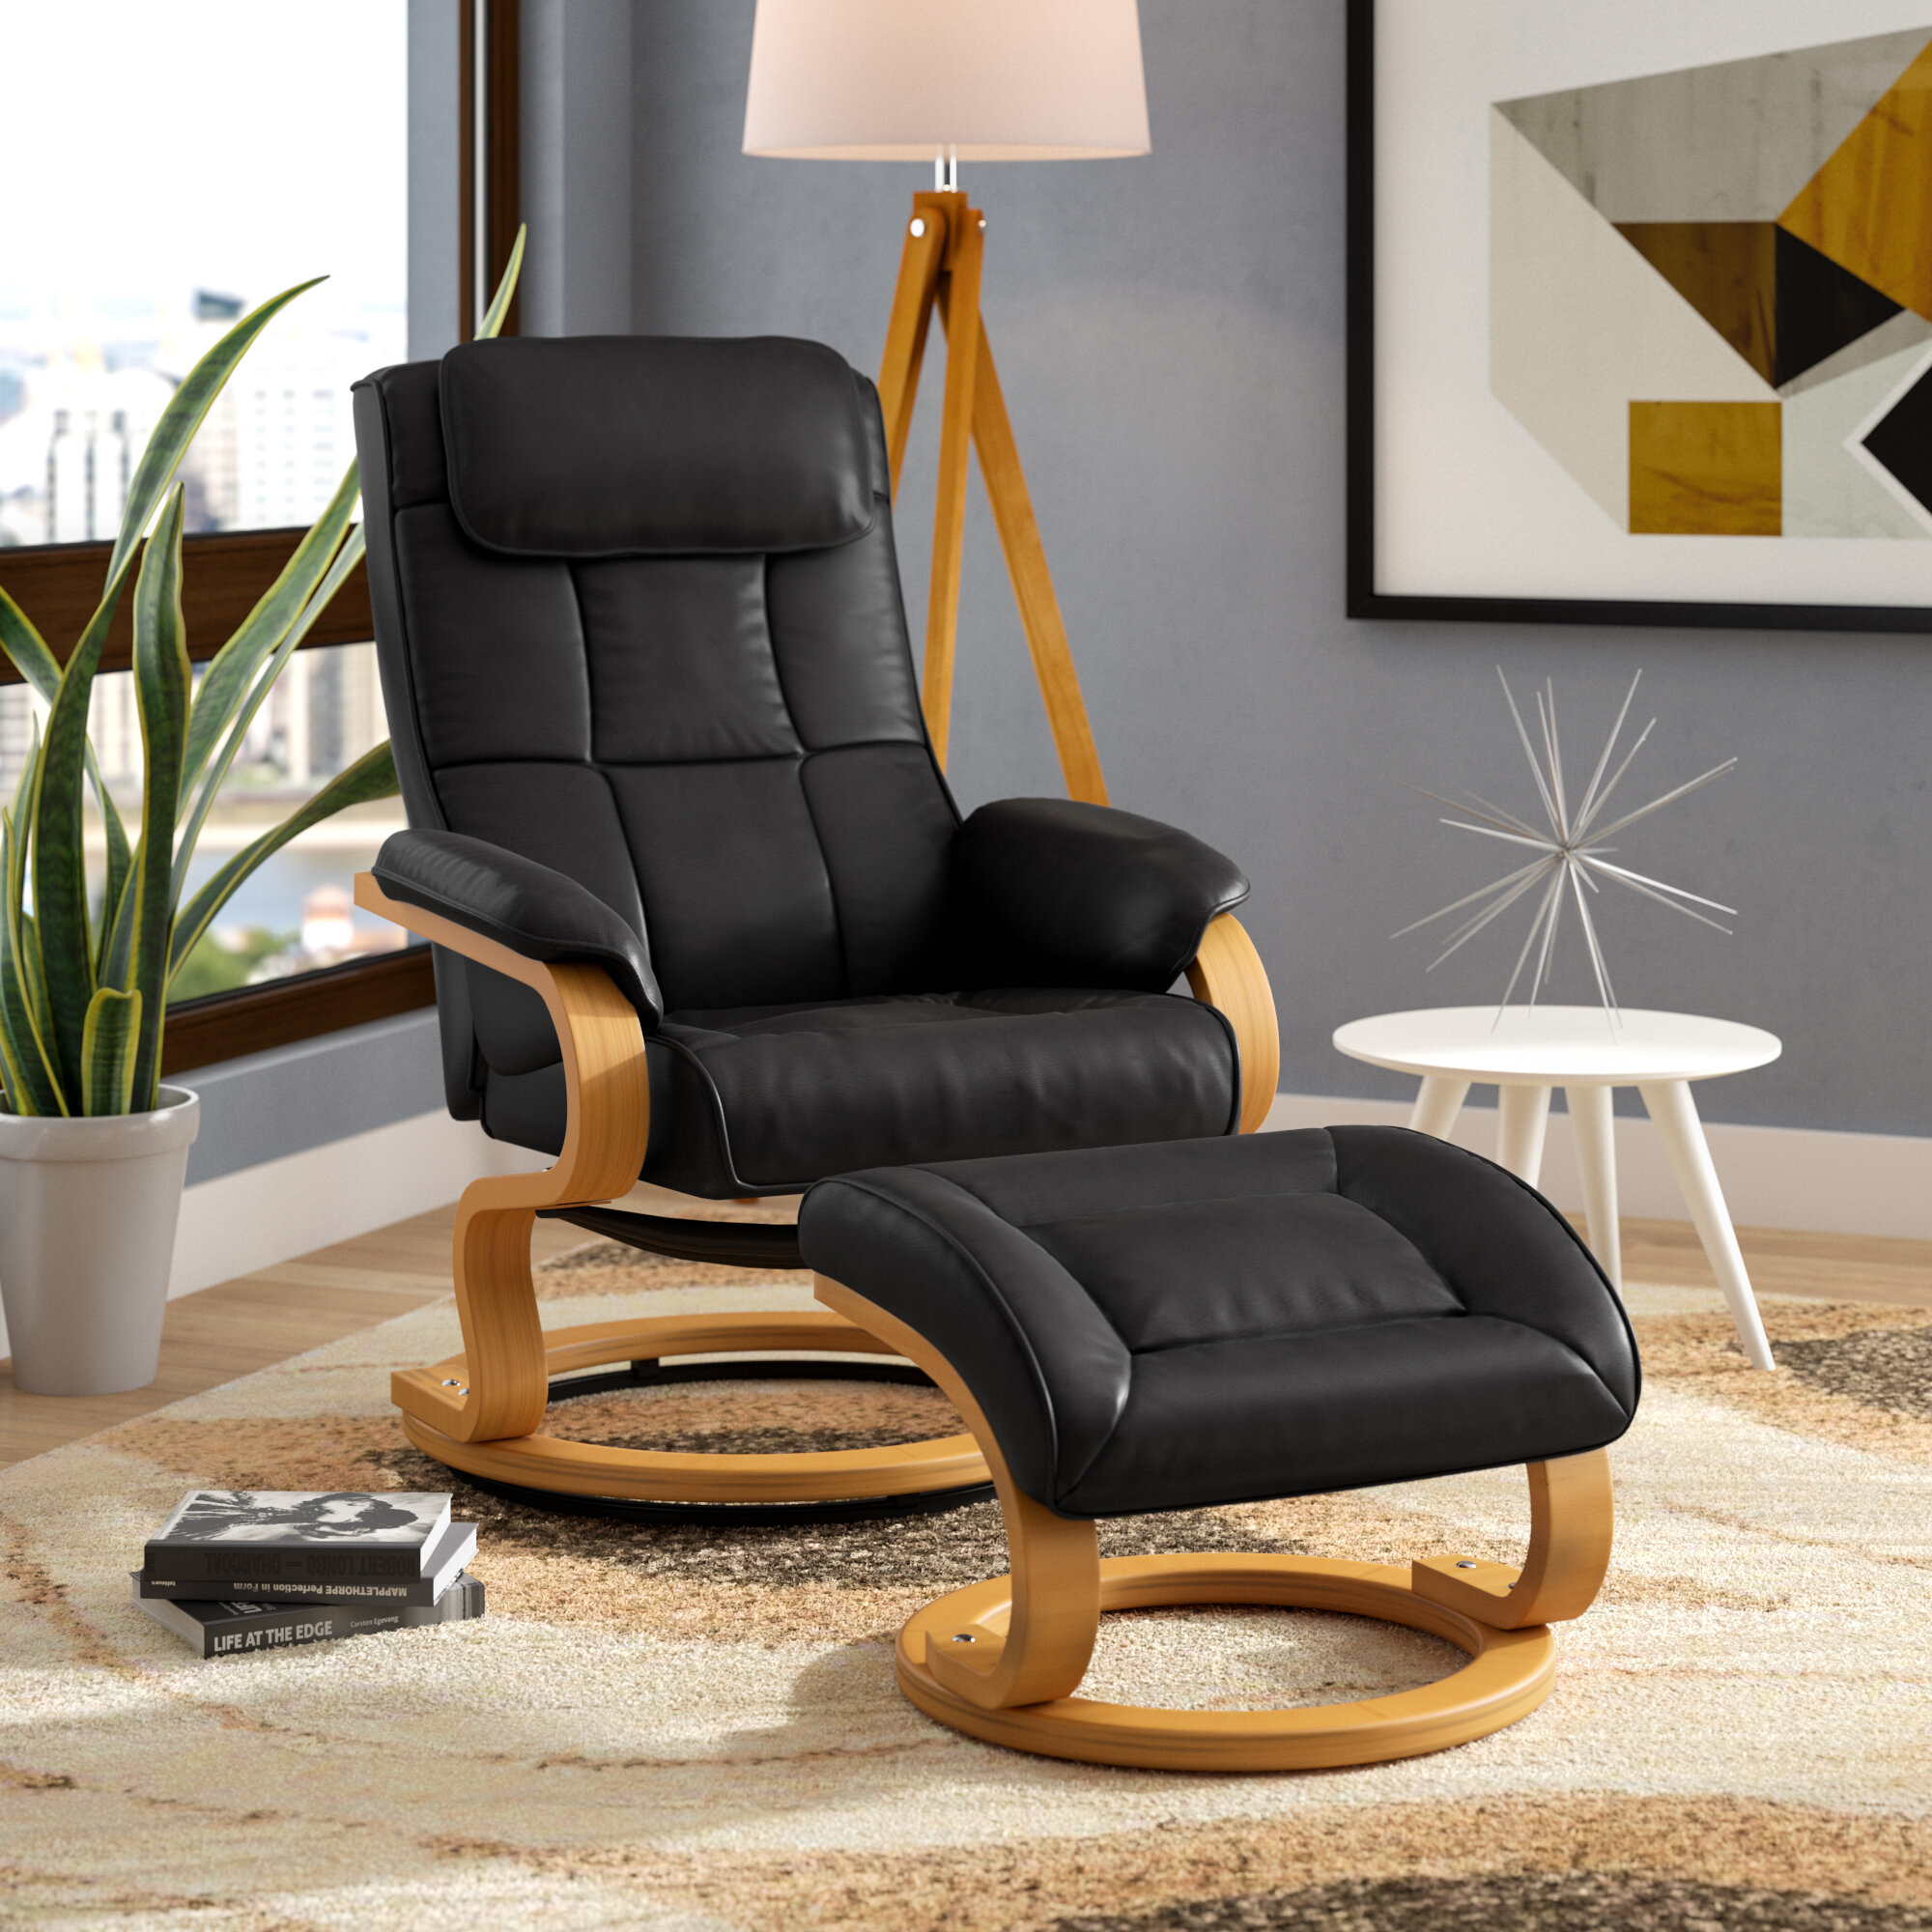 furniture allmodern milano with reviews ottoman recliner manual pdp swivel